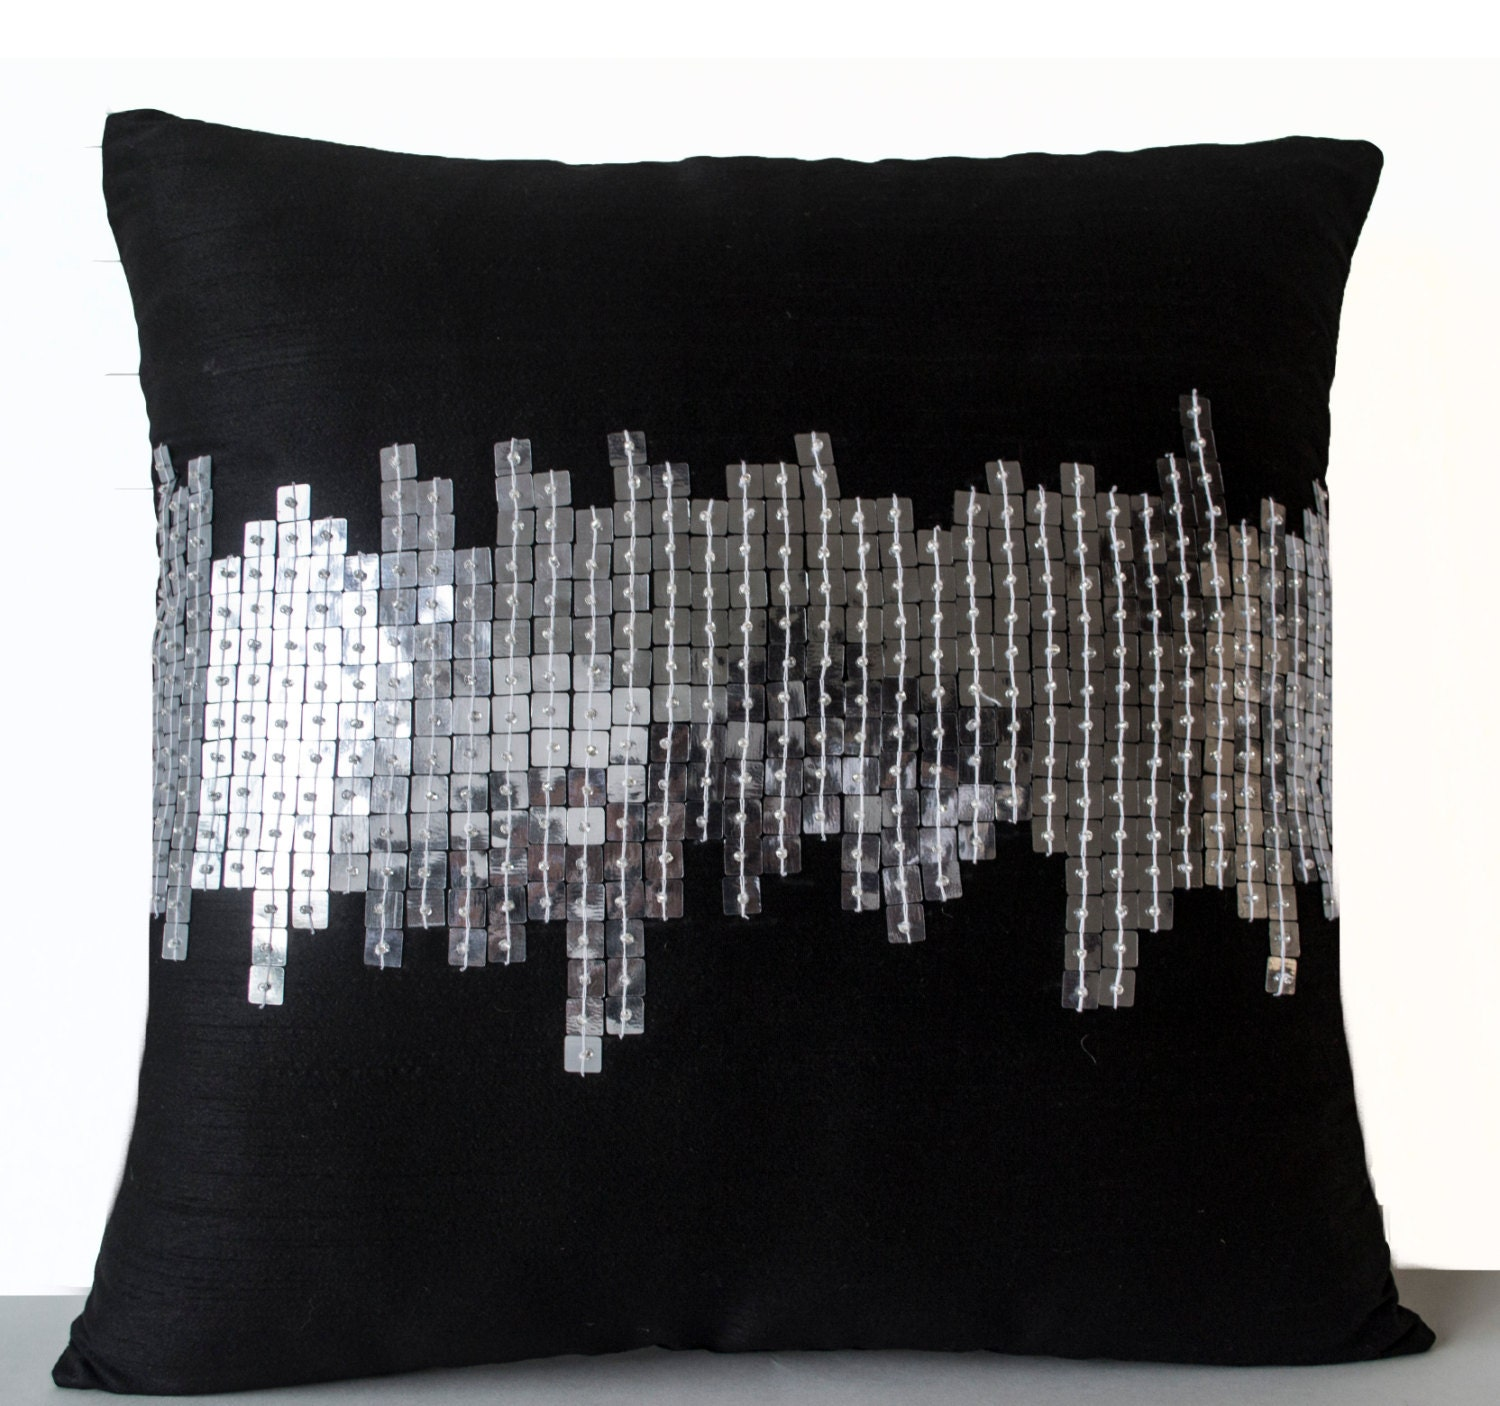 Black And Silver Decorative Pillows : Black Silk Pillows Black Silver Pillows Decorative Throw